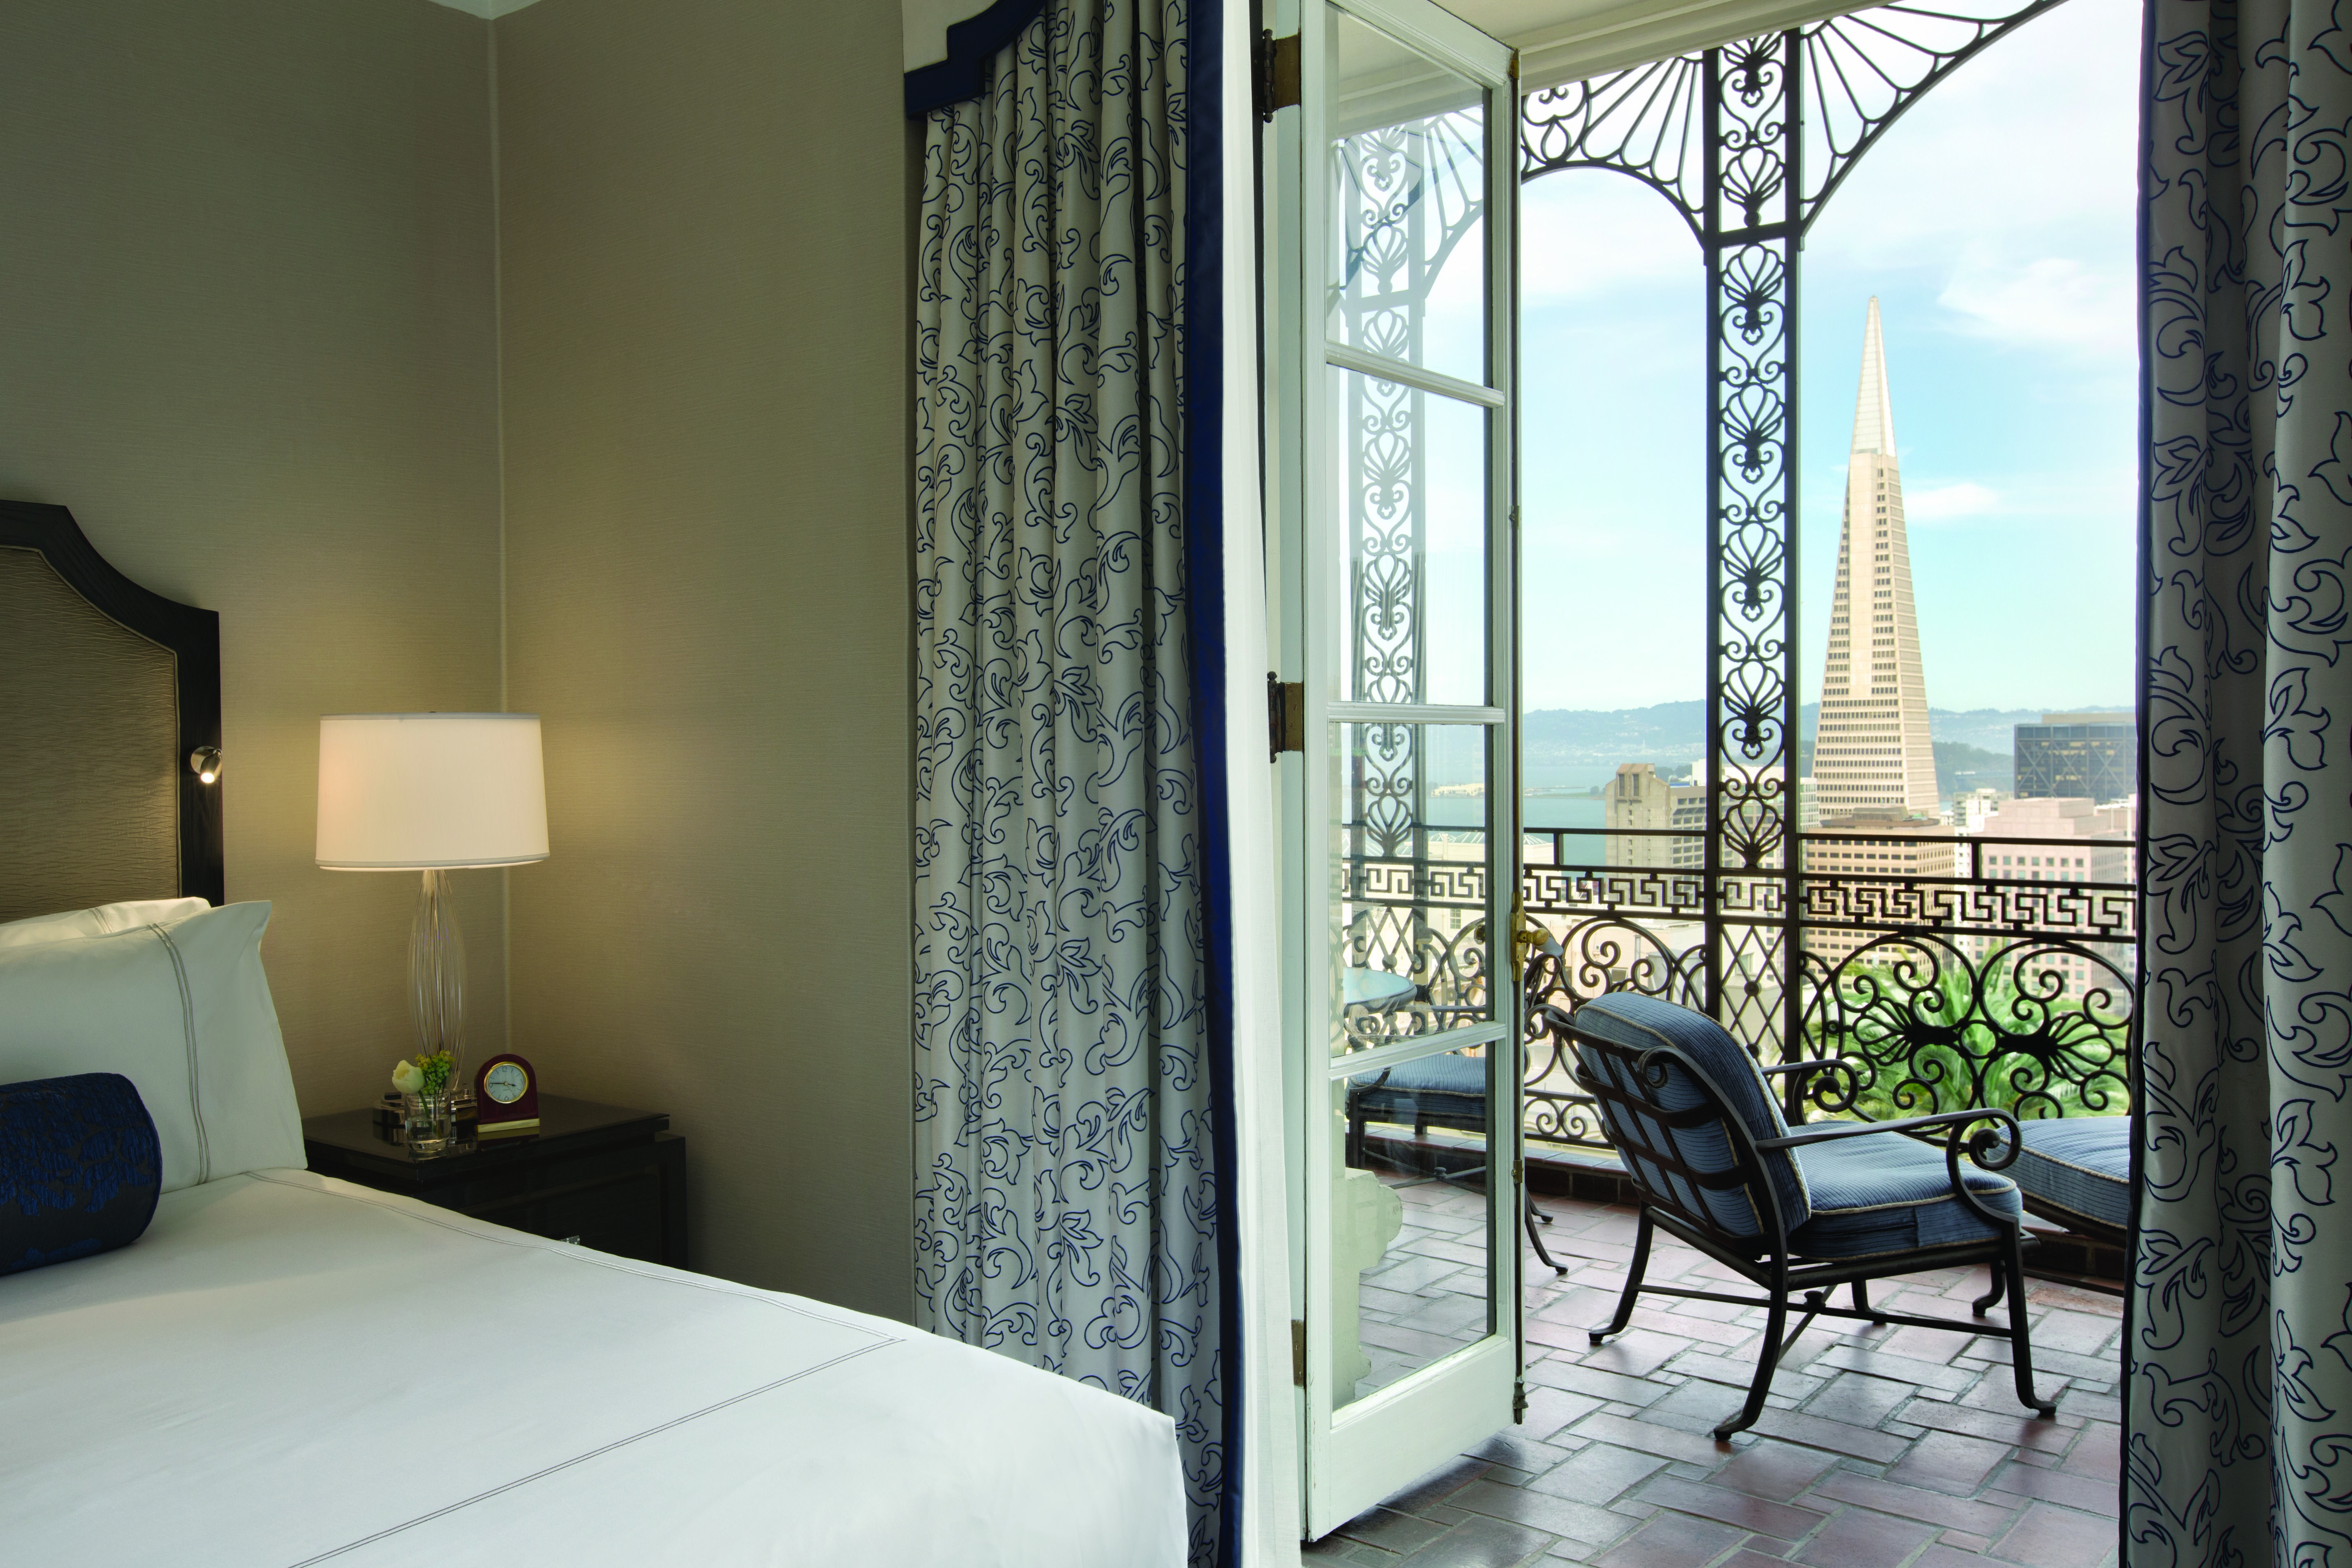 Fairmont San Francisco Balcony Suite, Luxury Stay, Room With A